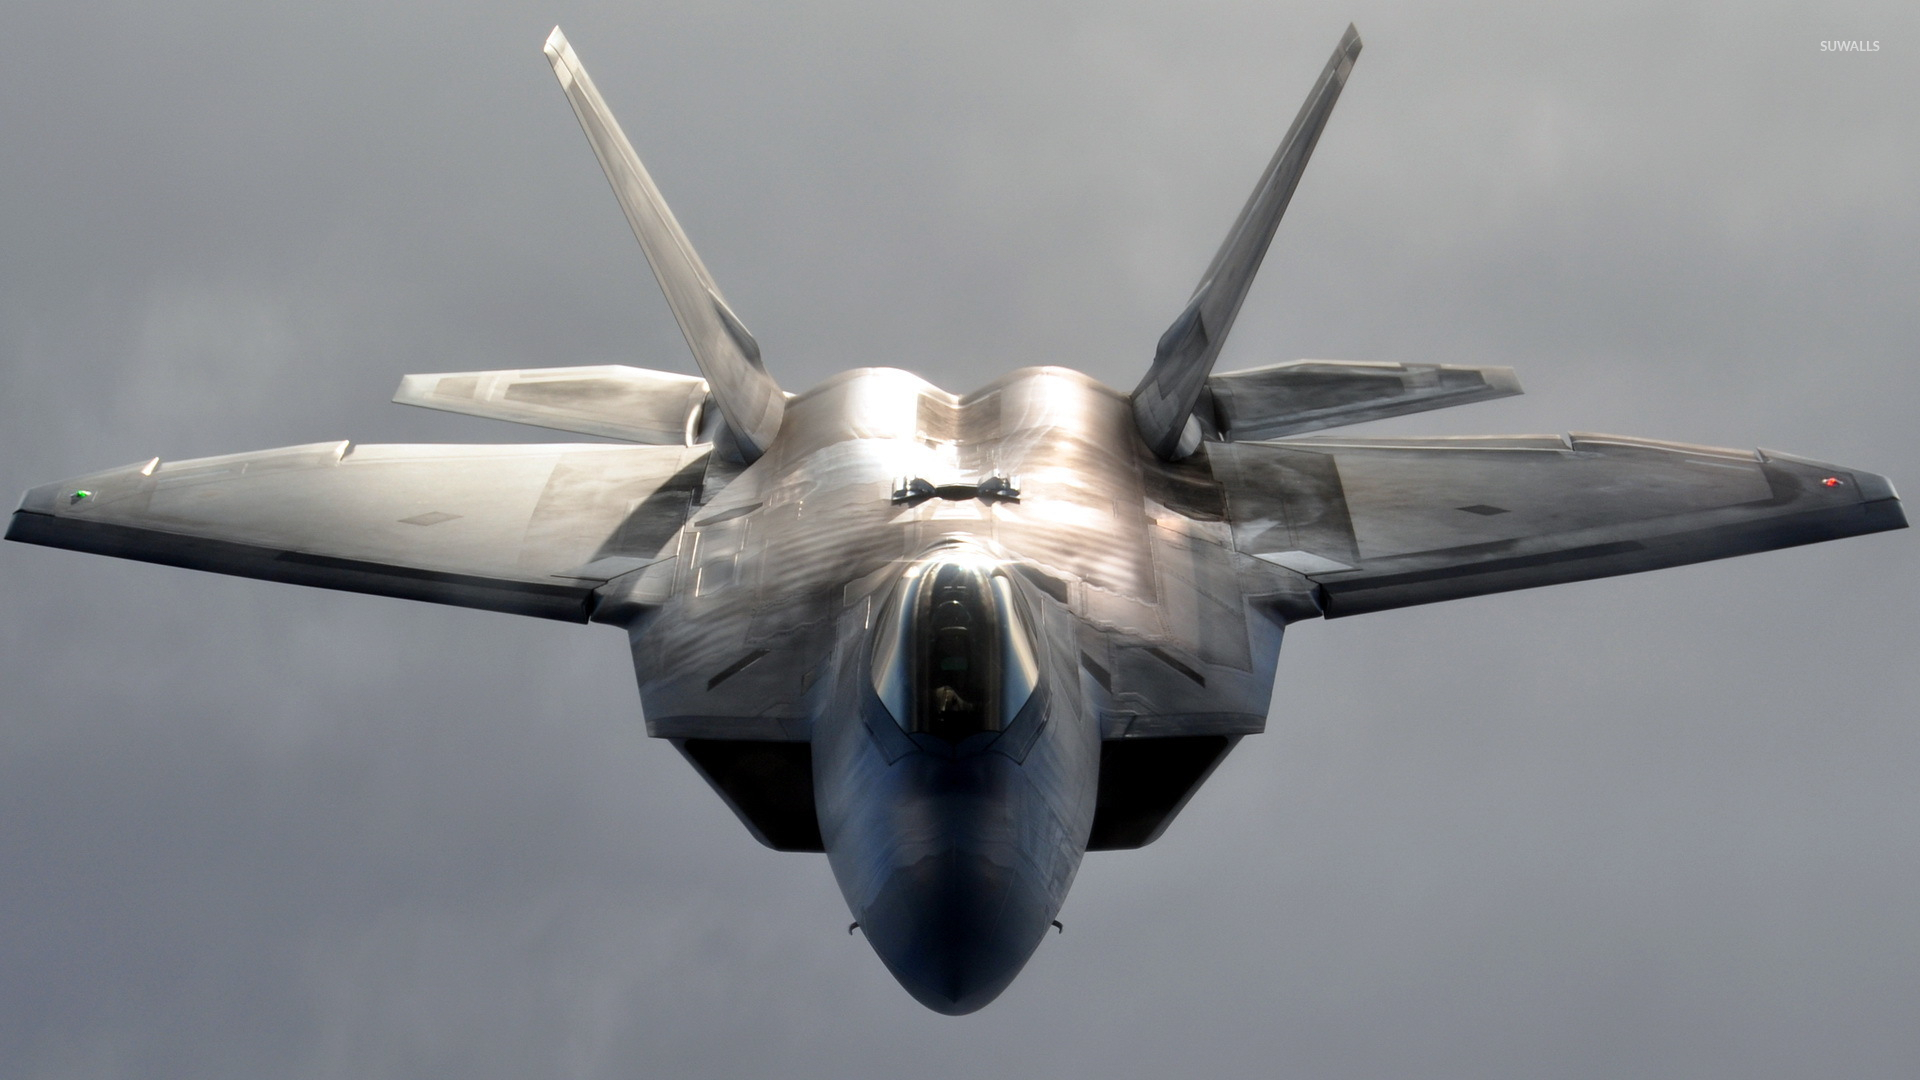 Lockheed Martin F 22 Raptor Front View Wallpaper